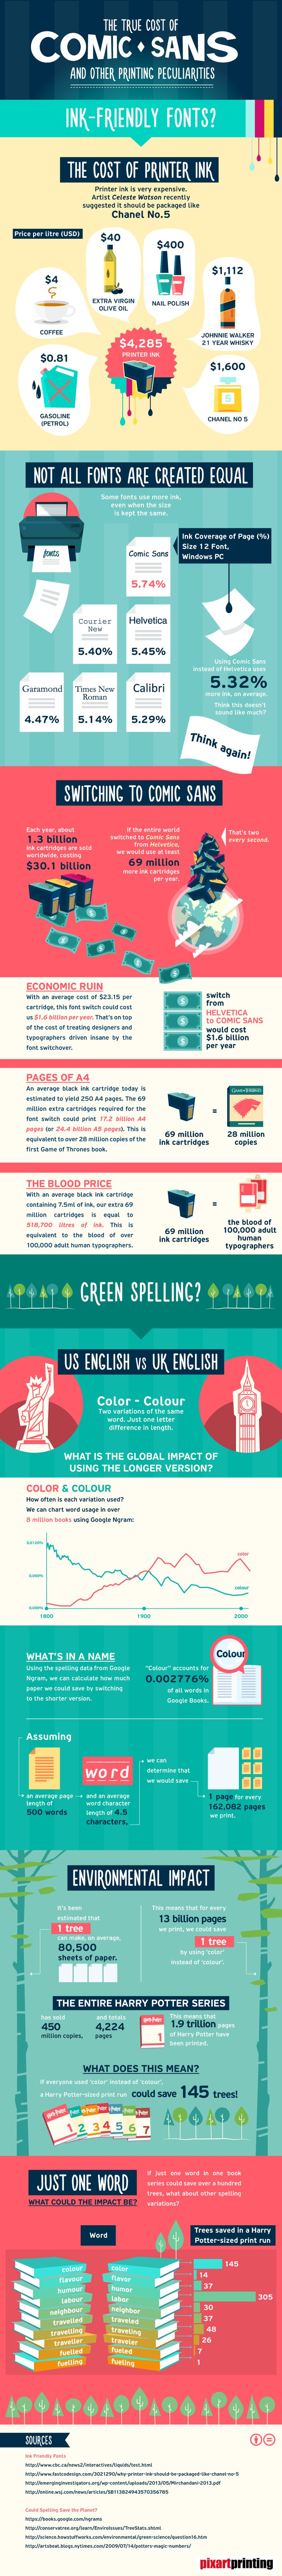 The True Cost of Comic Sans... I never imagined there was this much difference between printing options and the different fonts! Informative!